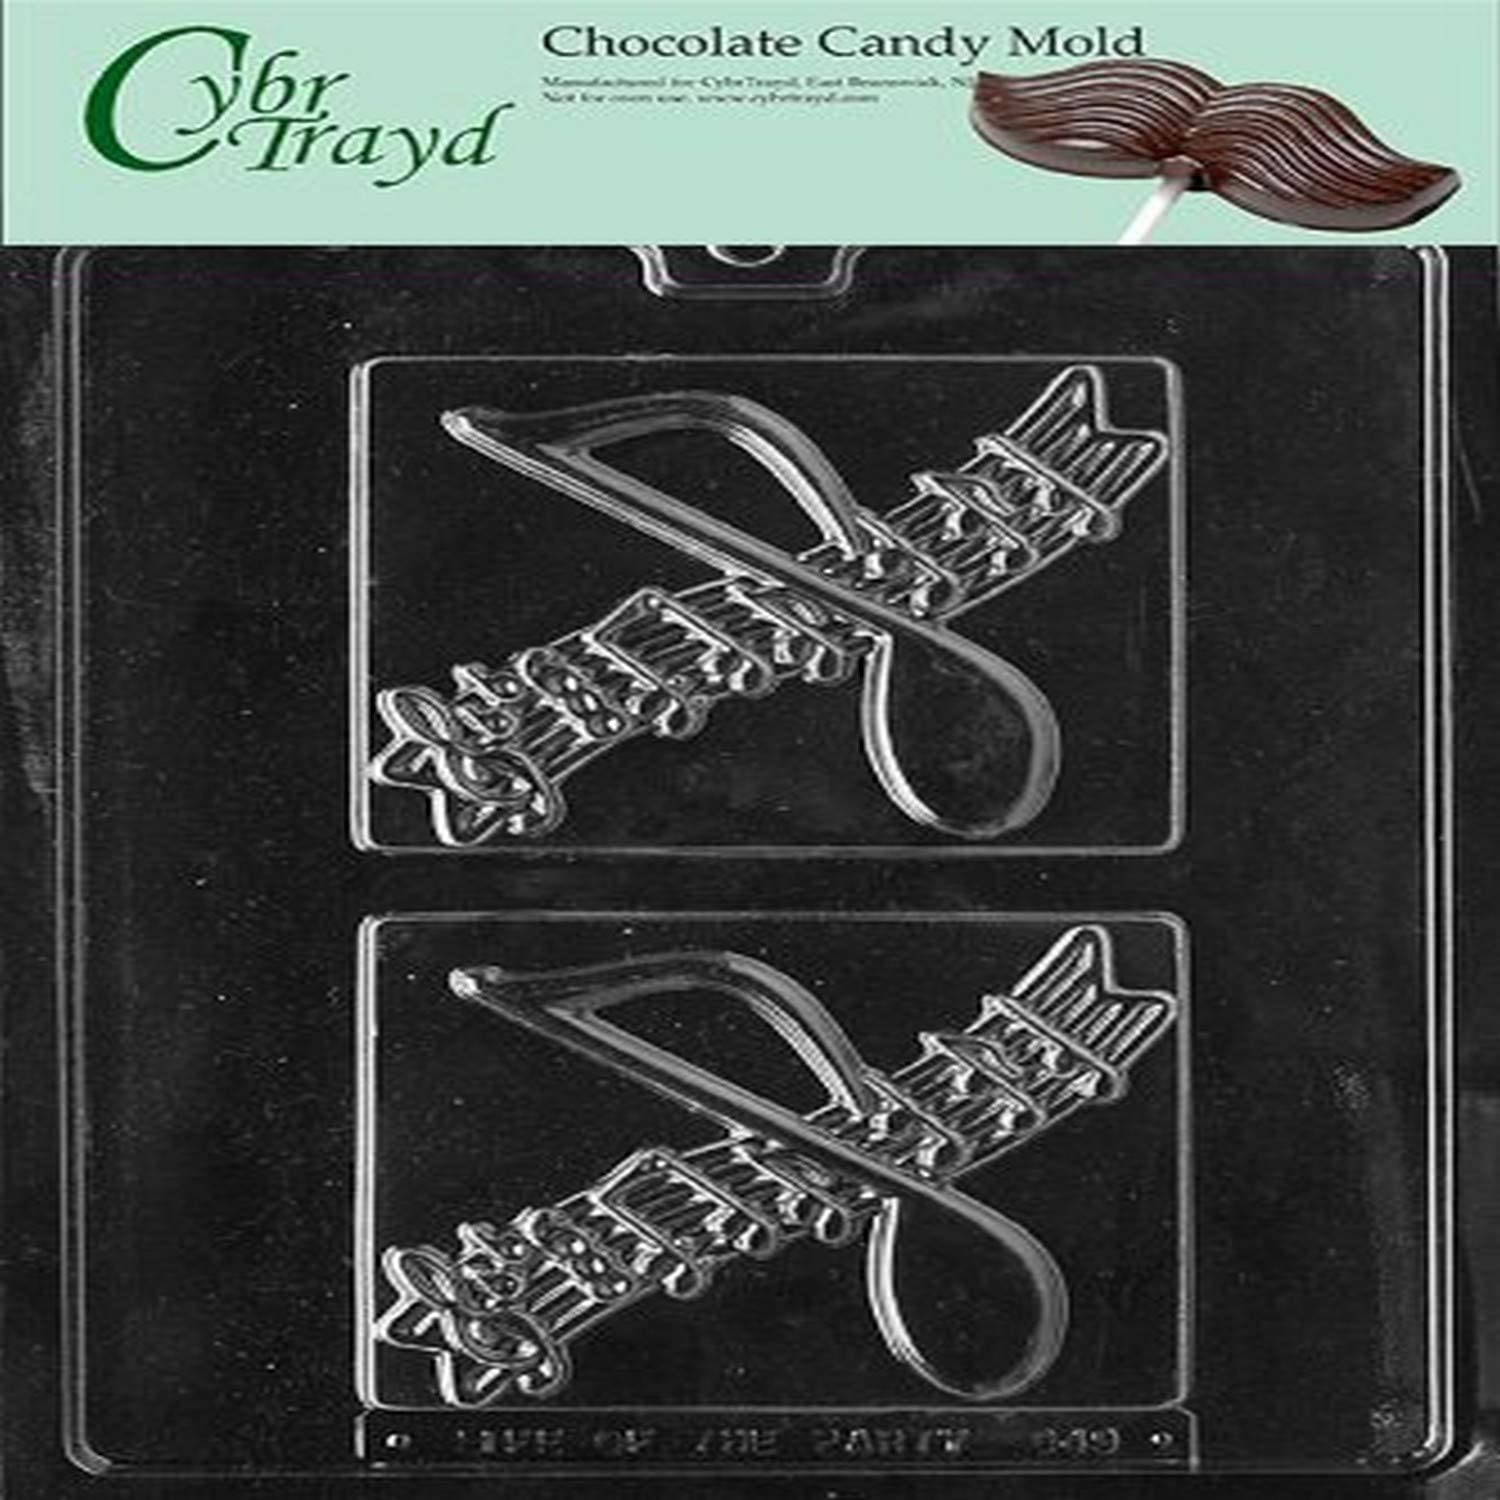 MUSIC PLACQUE FITS G30 Max 67% OFF chocolate candy mold Genuine Free Shipping BOX